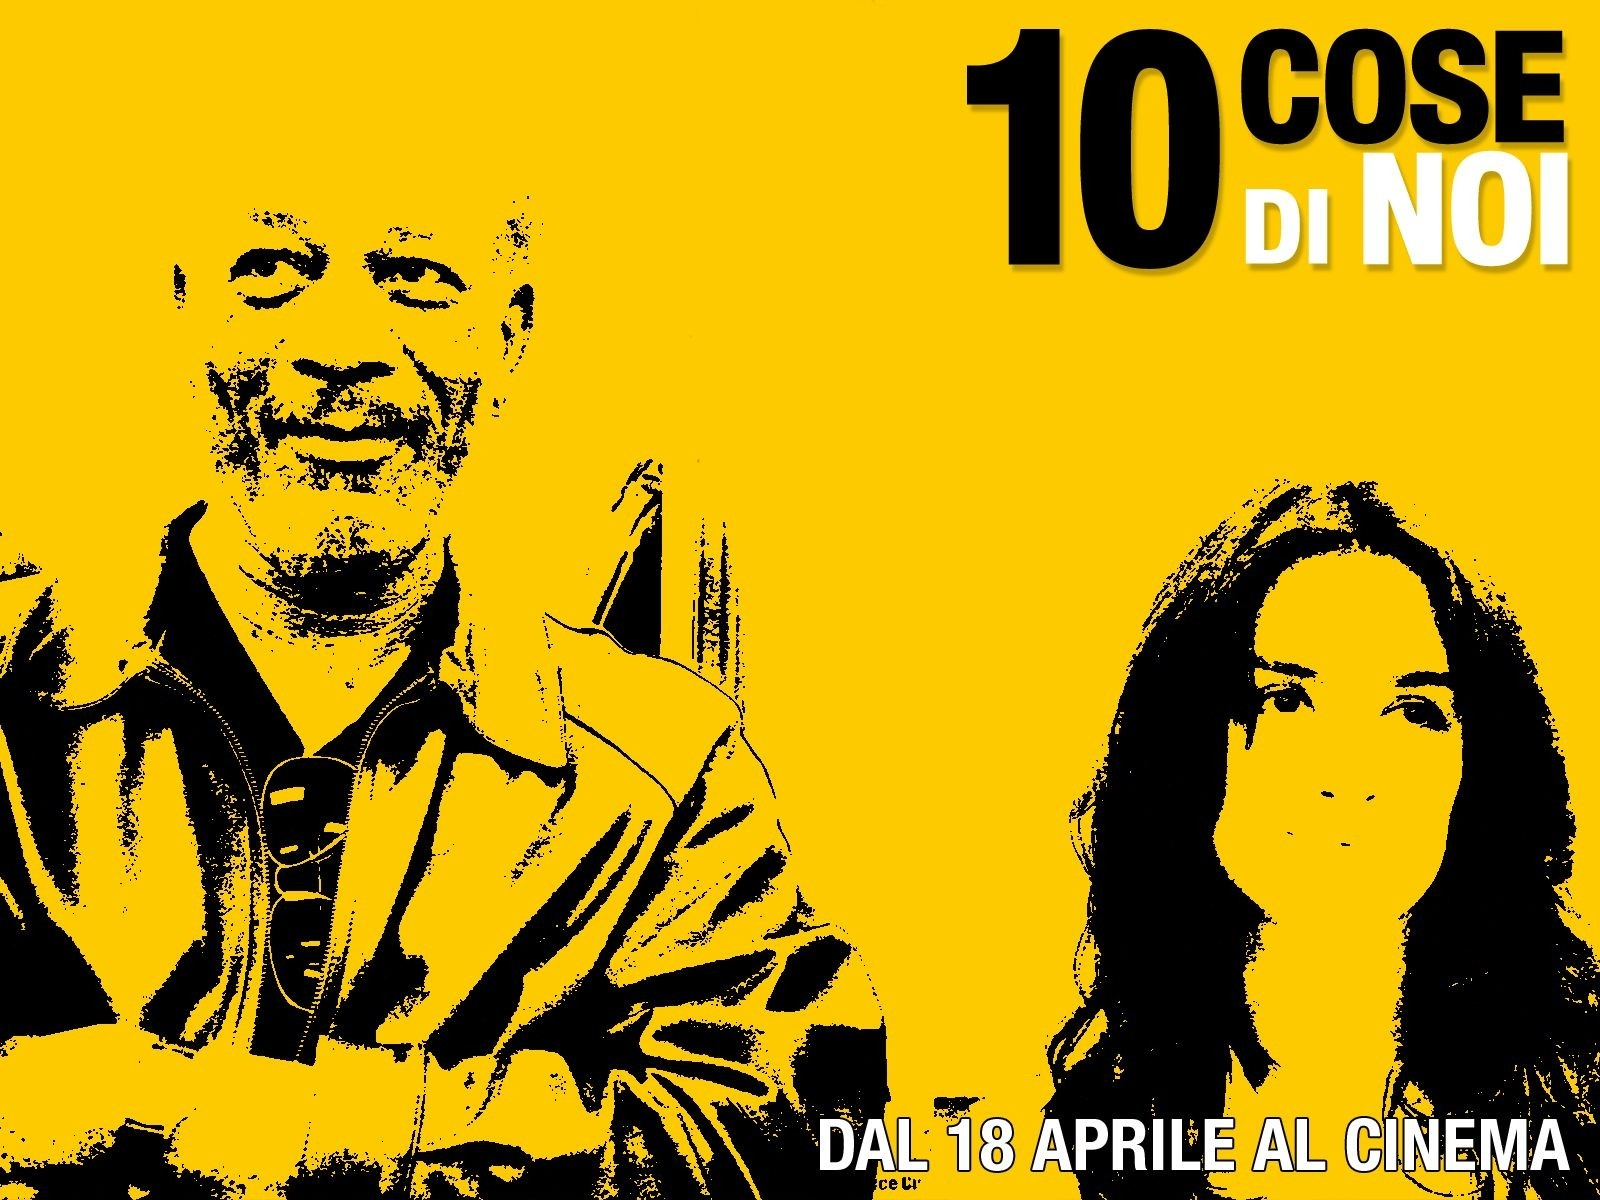 Wallpaper del film 10 cose di noi